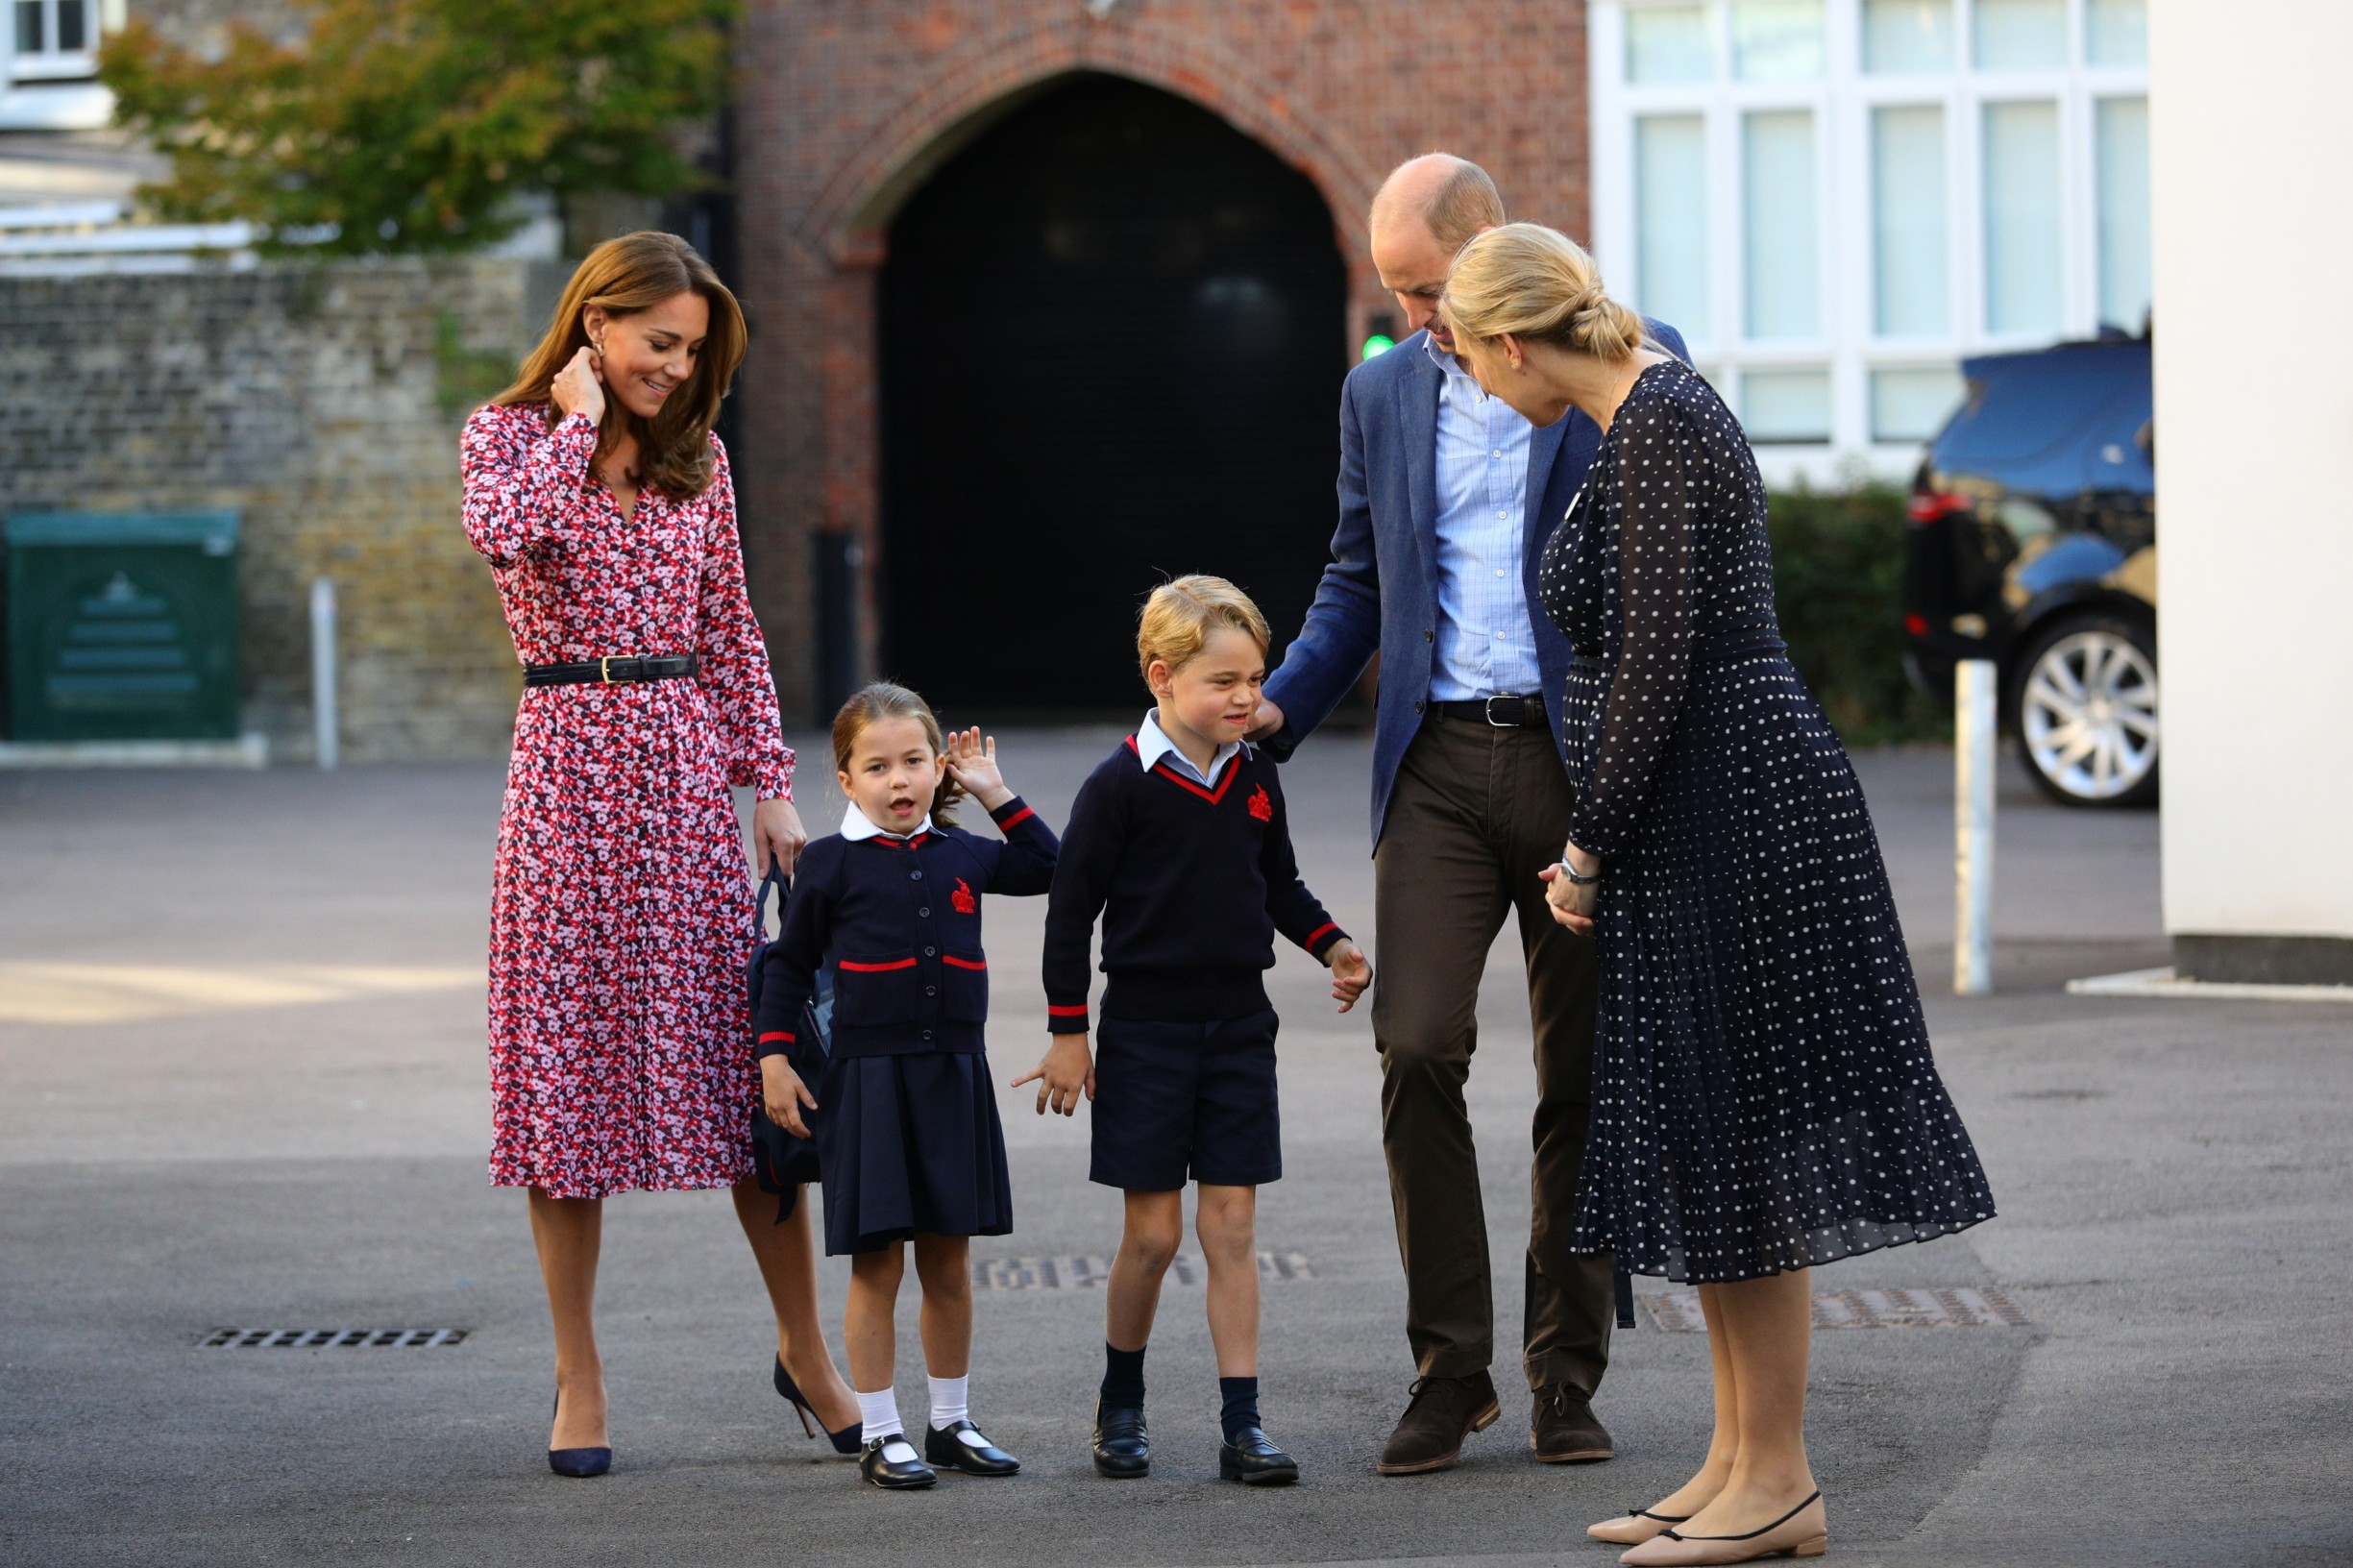 Helen Haslem (right) , head of the lower school greets Princess Charlotte as she arrives for her first day of school at Thomas's Battersea in London, accompanied by her brother Prince George and her parents the Duke and Duchess of Cambridge., Image: 469232757, License: Rights-managed, Restrictions: , Model Release: no, Credit line: Profimedia, Press Association